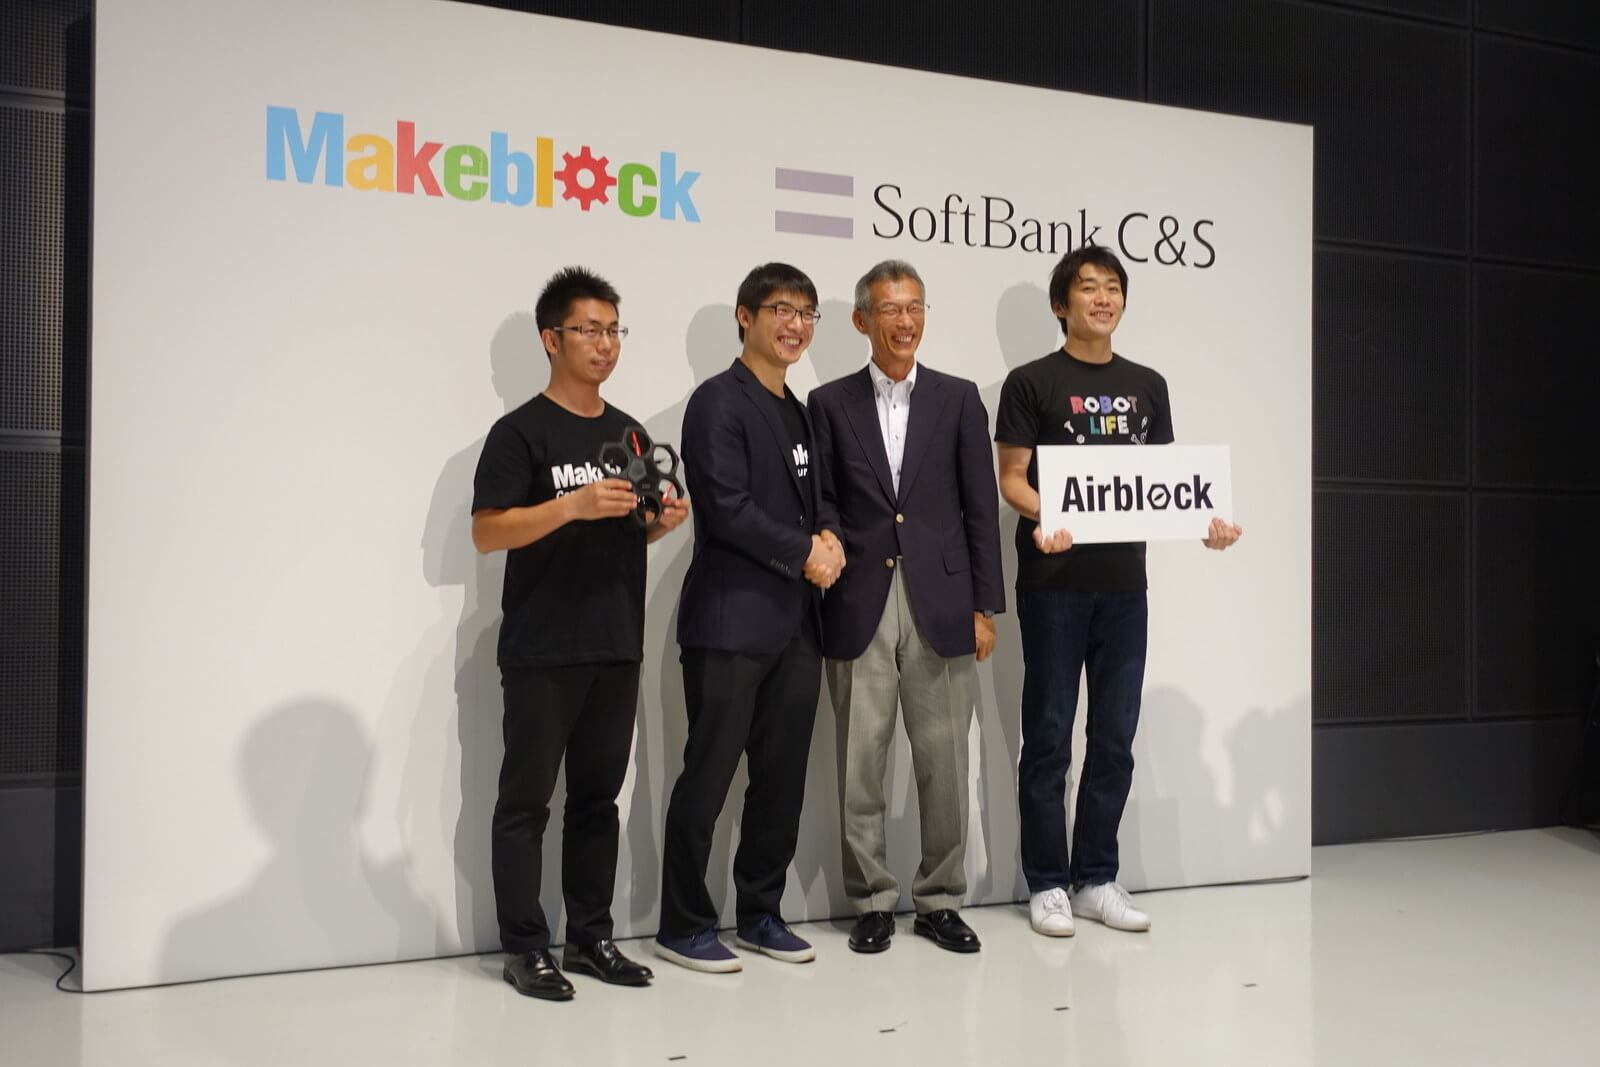 Makeblock and SoftBank